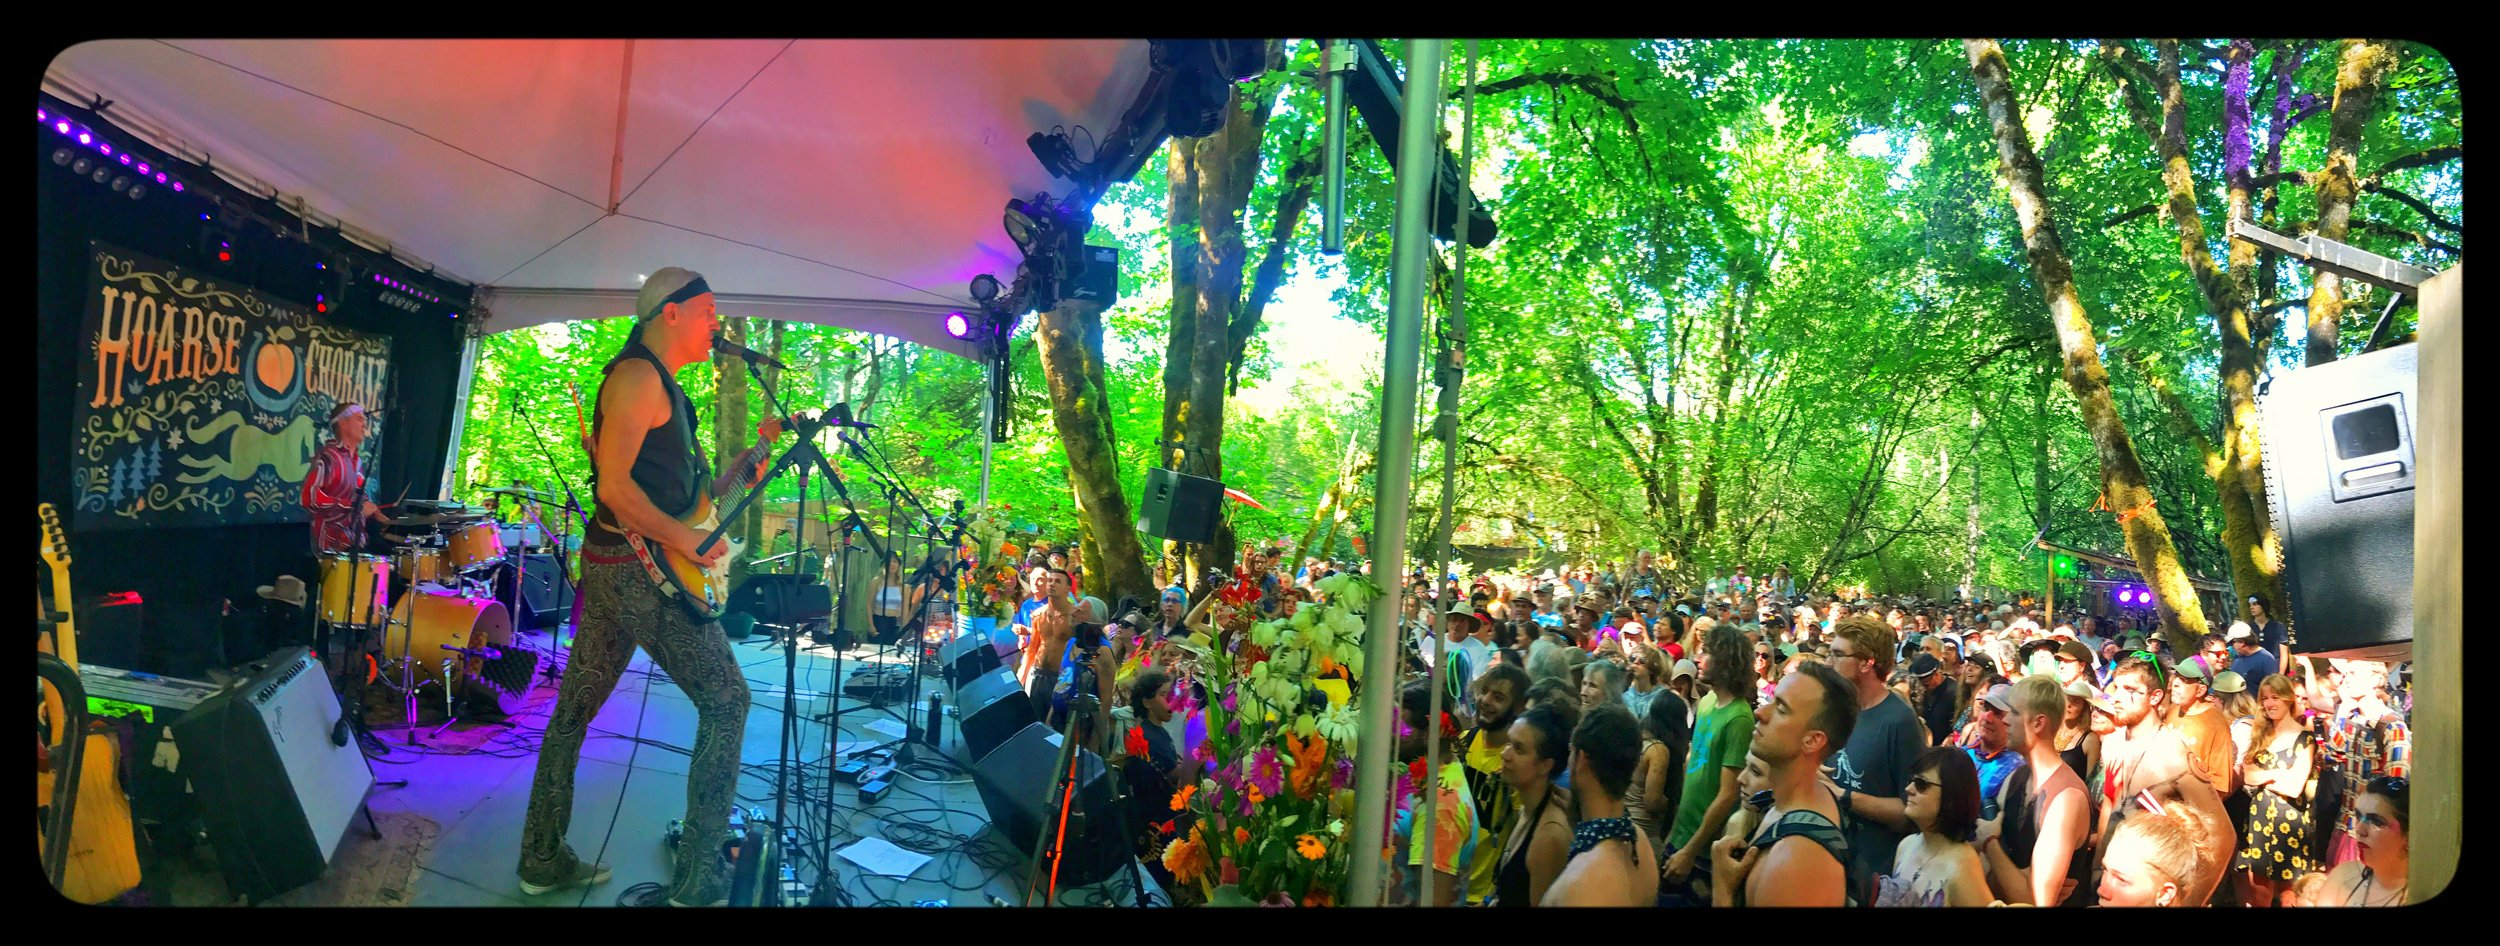 Oregon Country Fair. Hoarse Chorale Stage. 2017